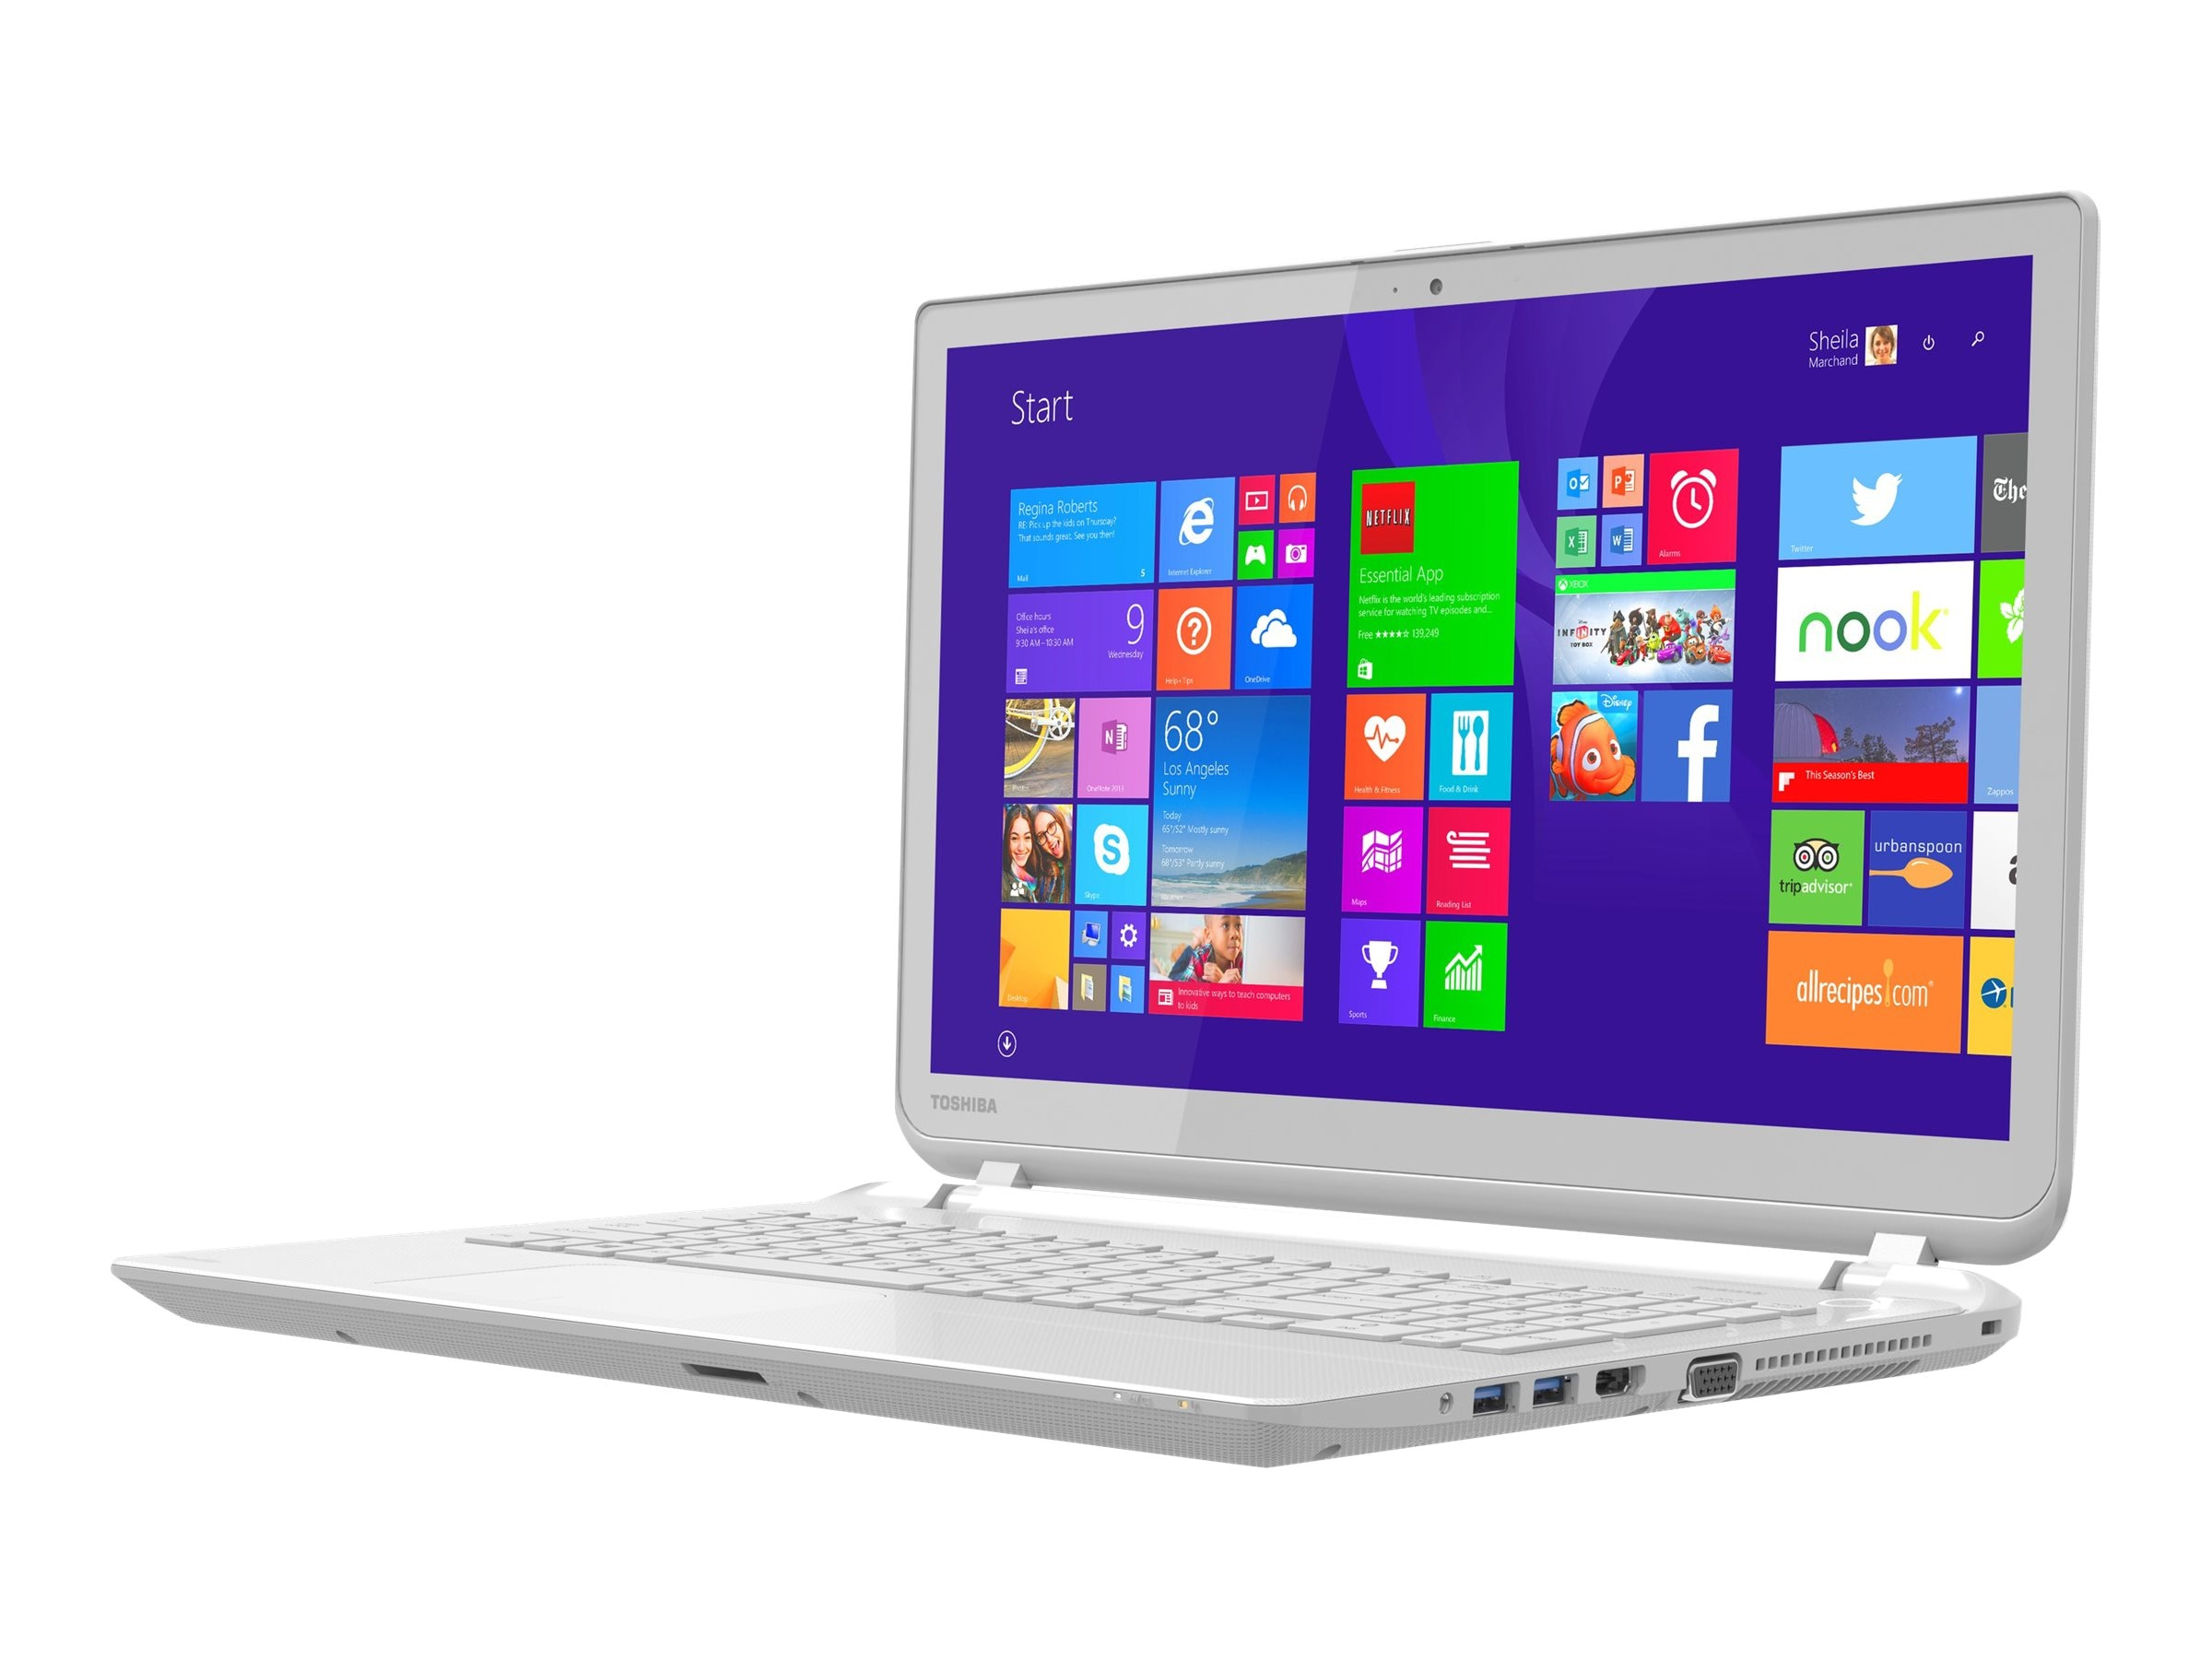 Toshiba Satellite L55T-B5257W Core i5-4210U 1.7GHz 6GB 750GB DVD SM bgn NIC WC 4C 15.6 HD MT W8.1 White, PSKT8U-017004, 17371781, Notebooks